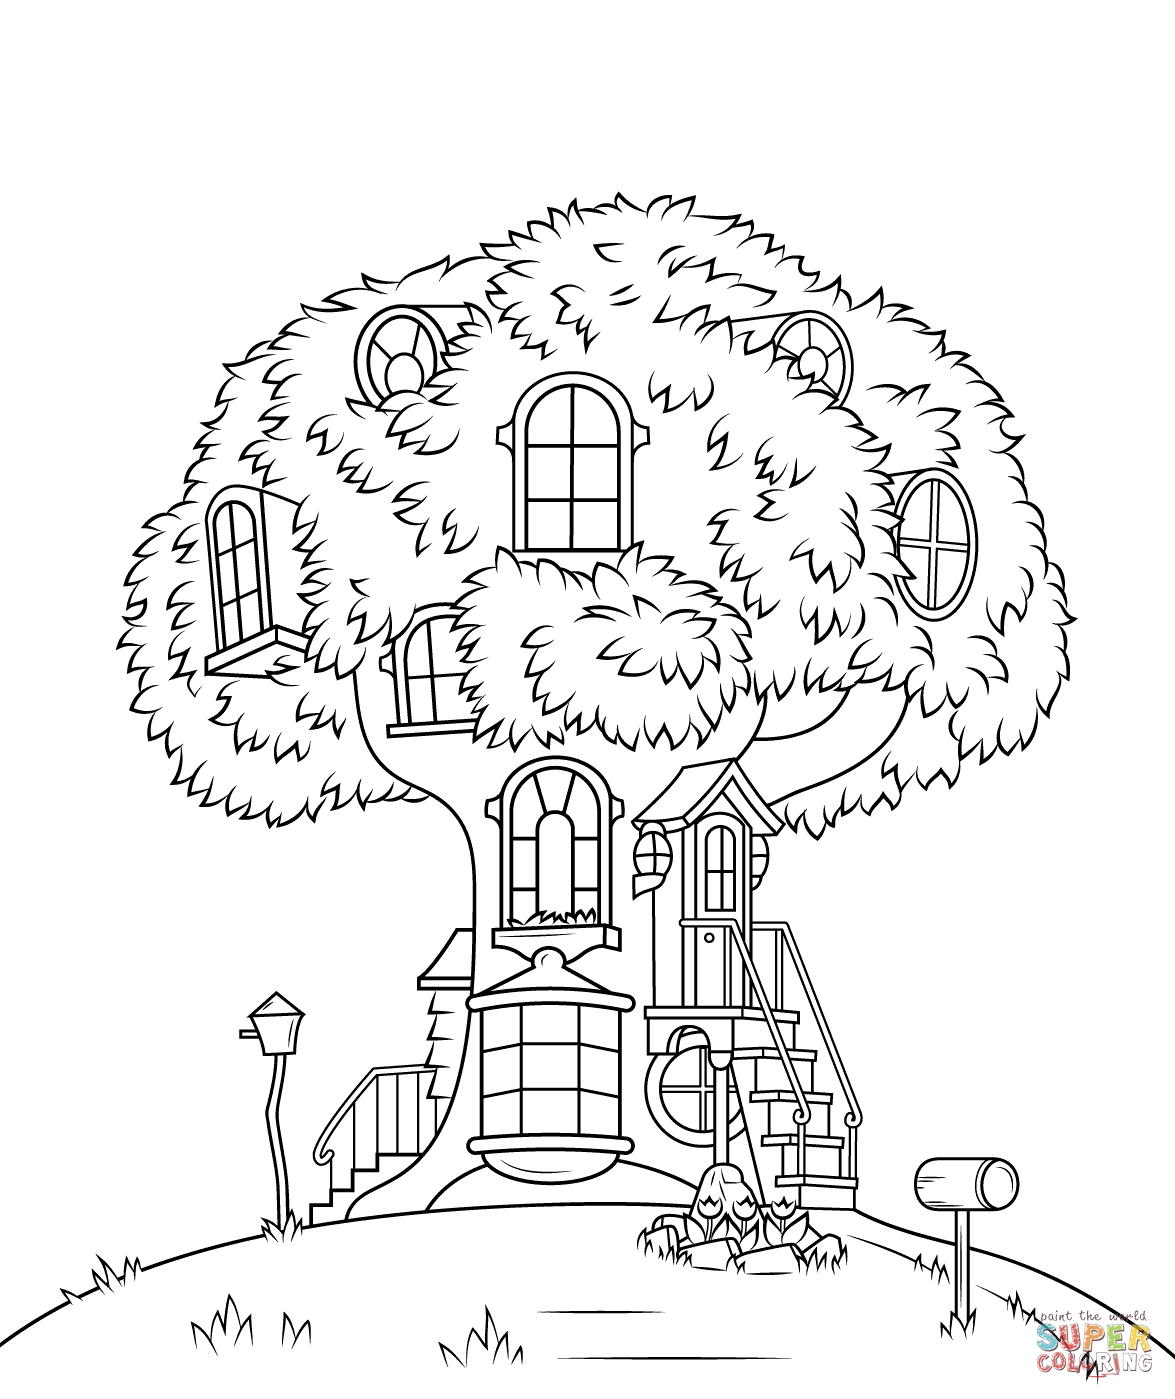 berenstain bears coloring pages - berenstein bears coloring sketch templates